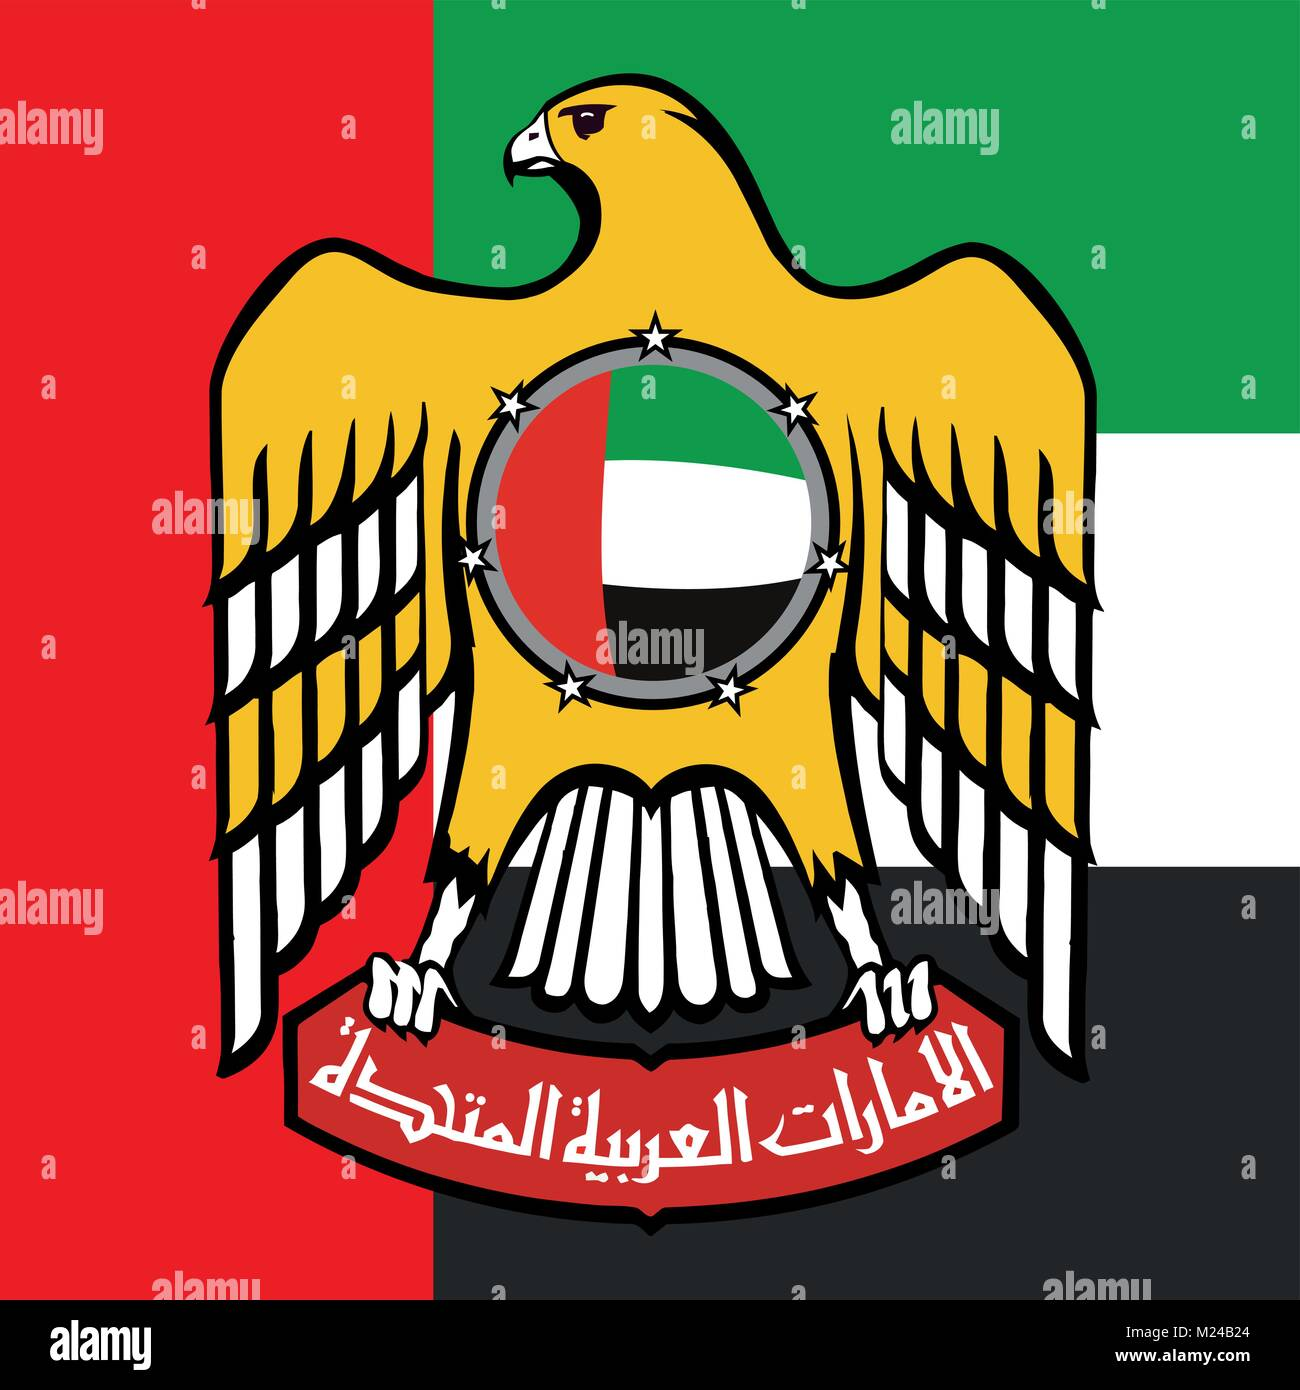 United arab emirates coat of arms and flag official symbols of united arab emirates coat of arms and flag official symbols of the nation biocorpaavc Images